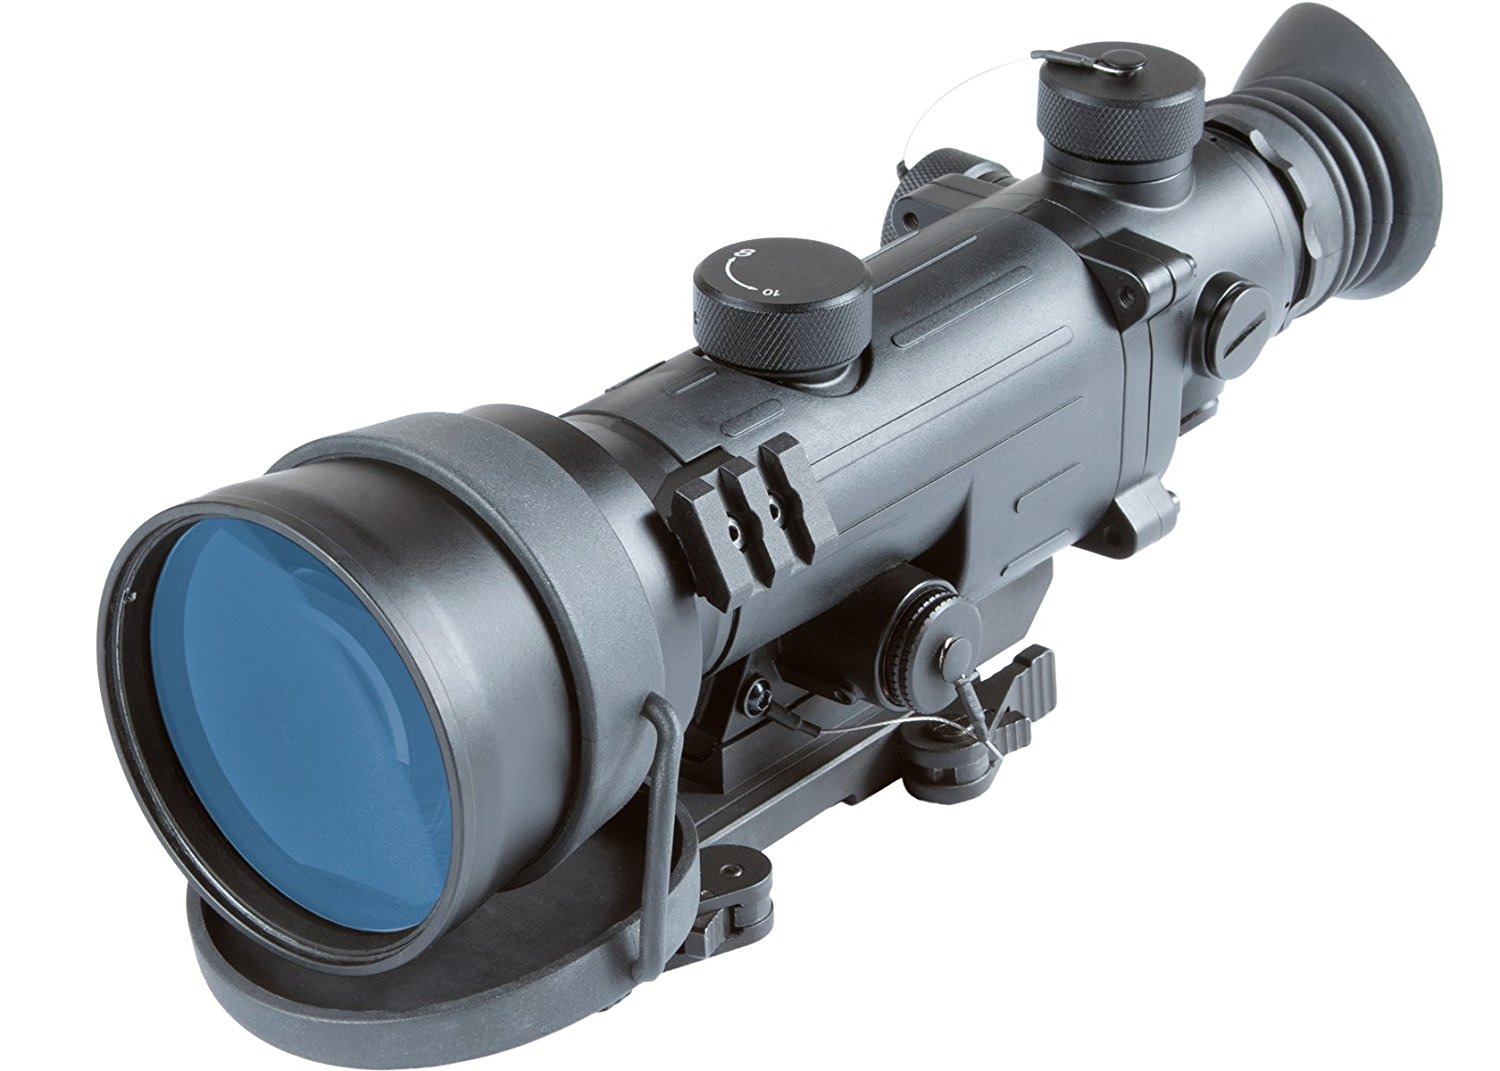 Armasight Vampire 3x CORE IIT Night Vision Rifle Scope Front View